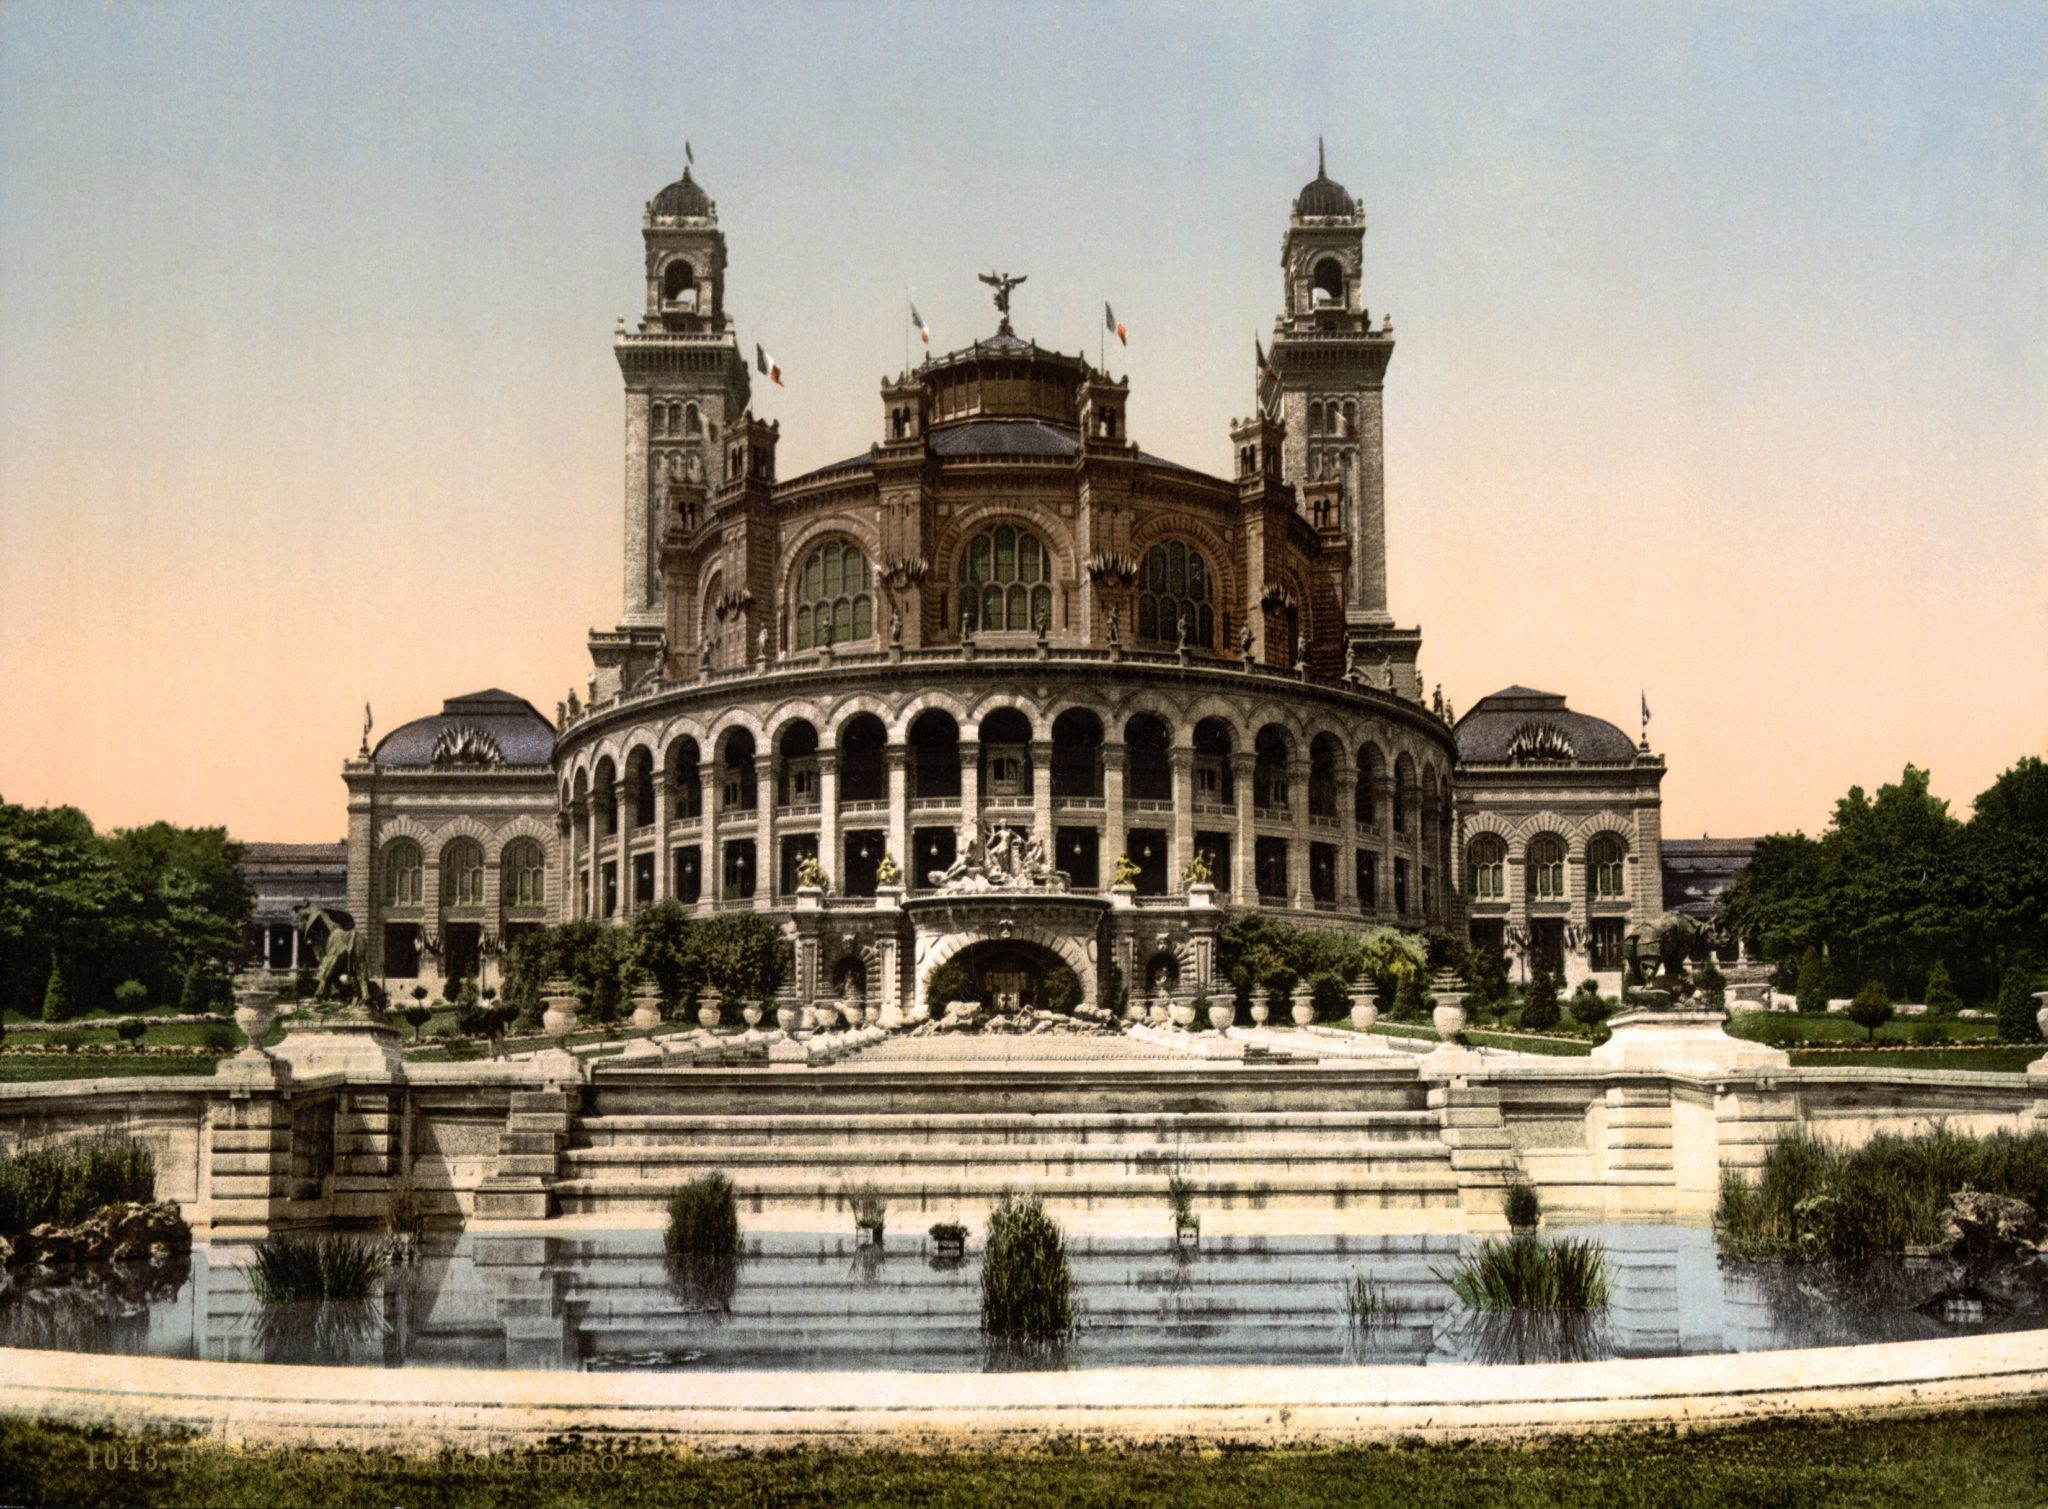 http://sunidgroup.com.vn/wp-content/uploads/2017/08/The_Trocadero_Exposition_Universal_1900_Paris_France.jpg